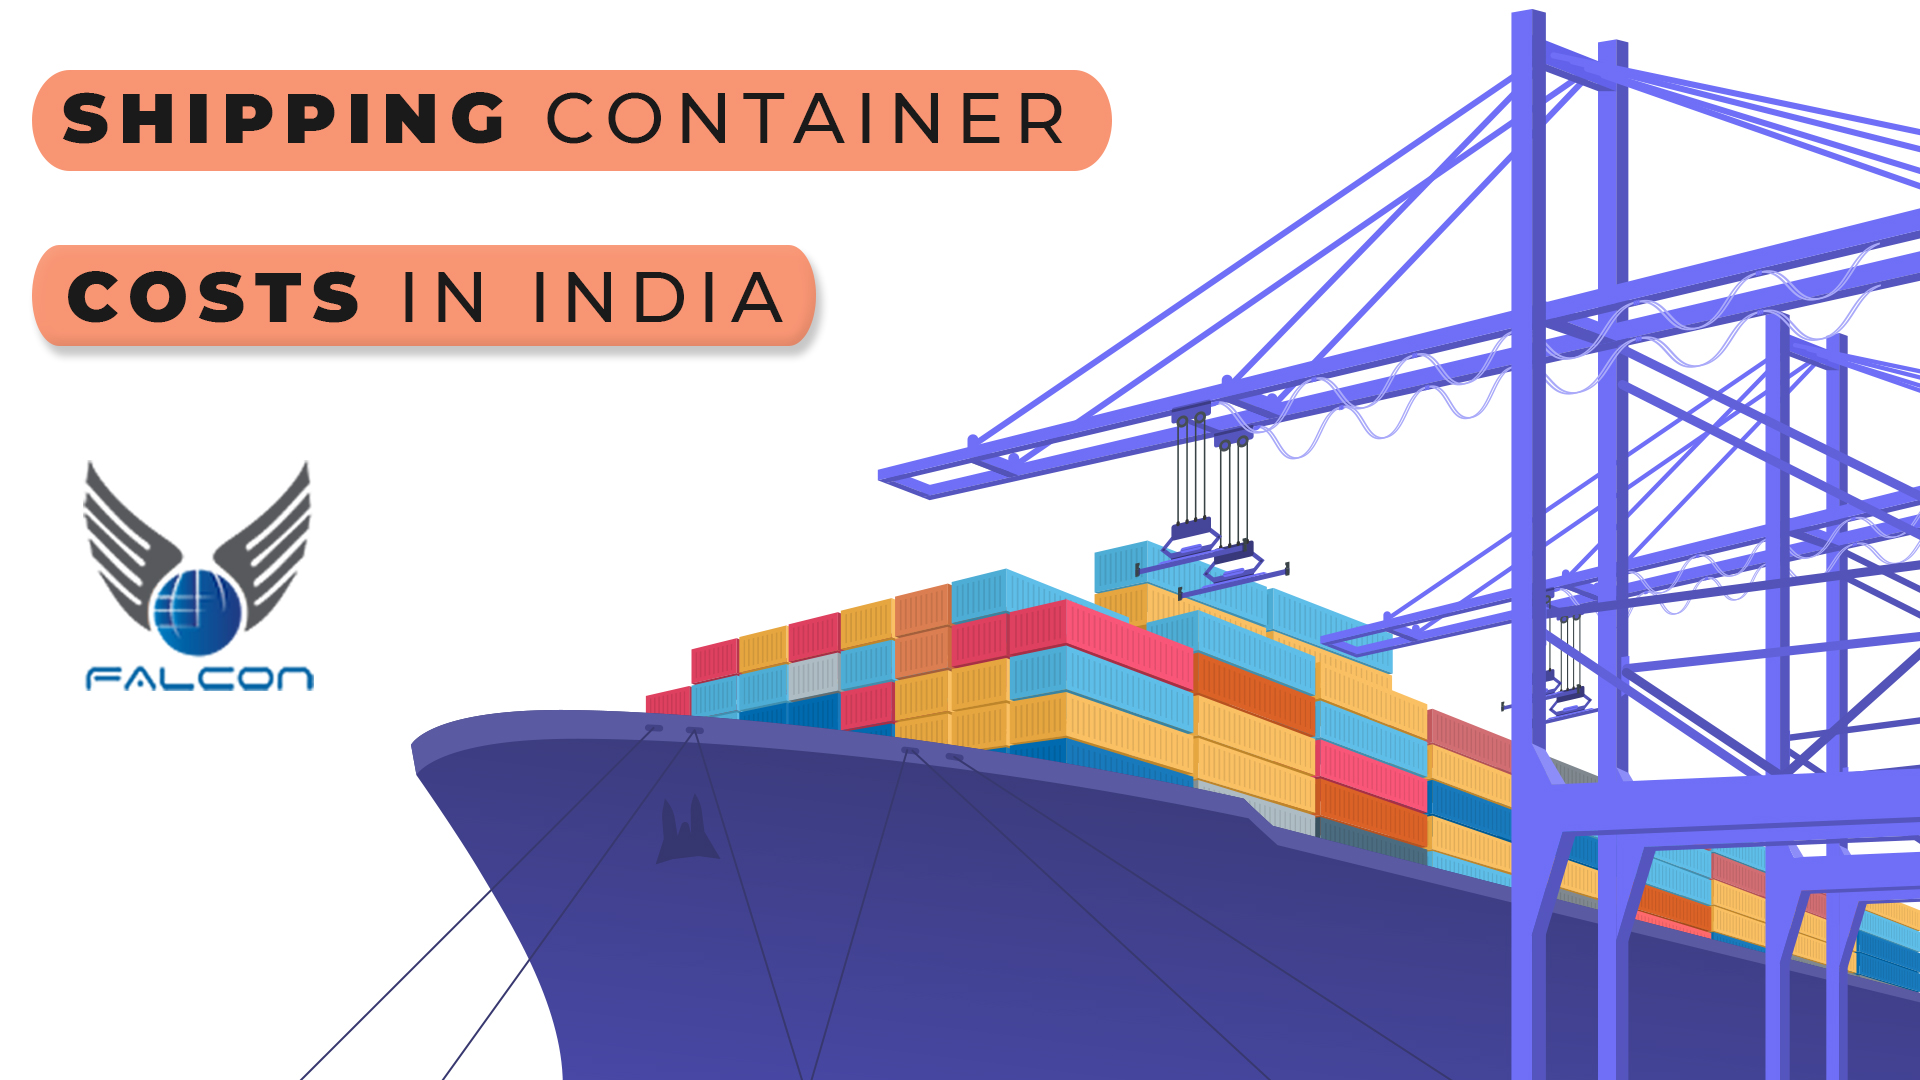 shipping container costs in India